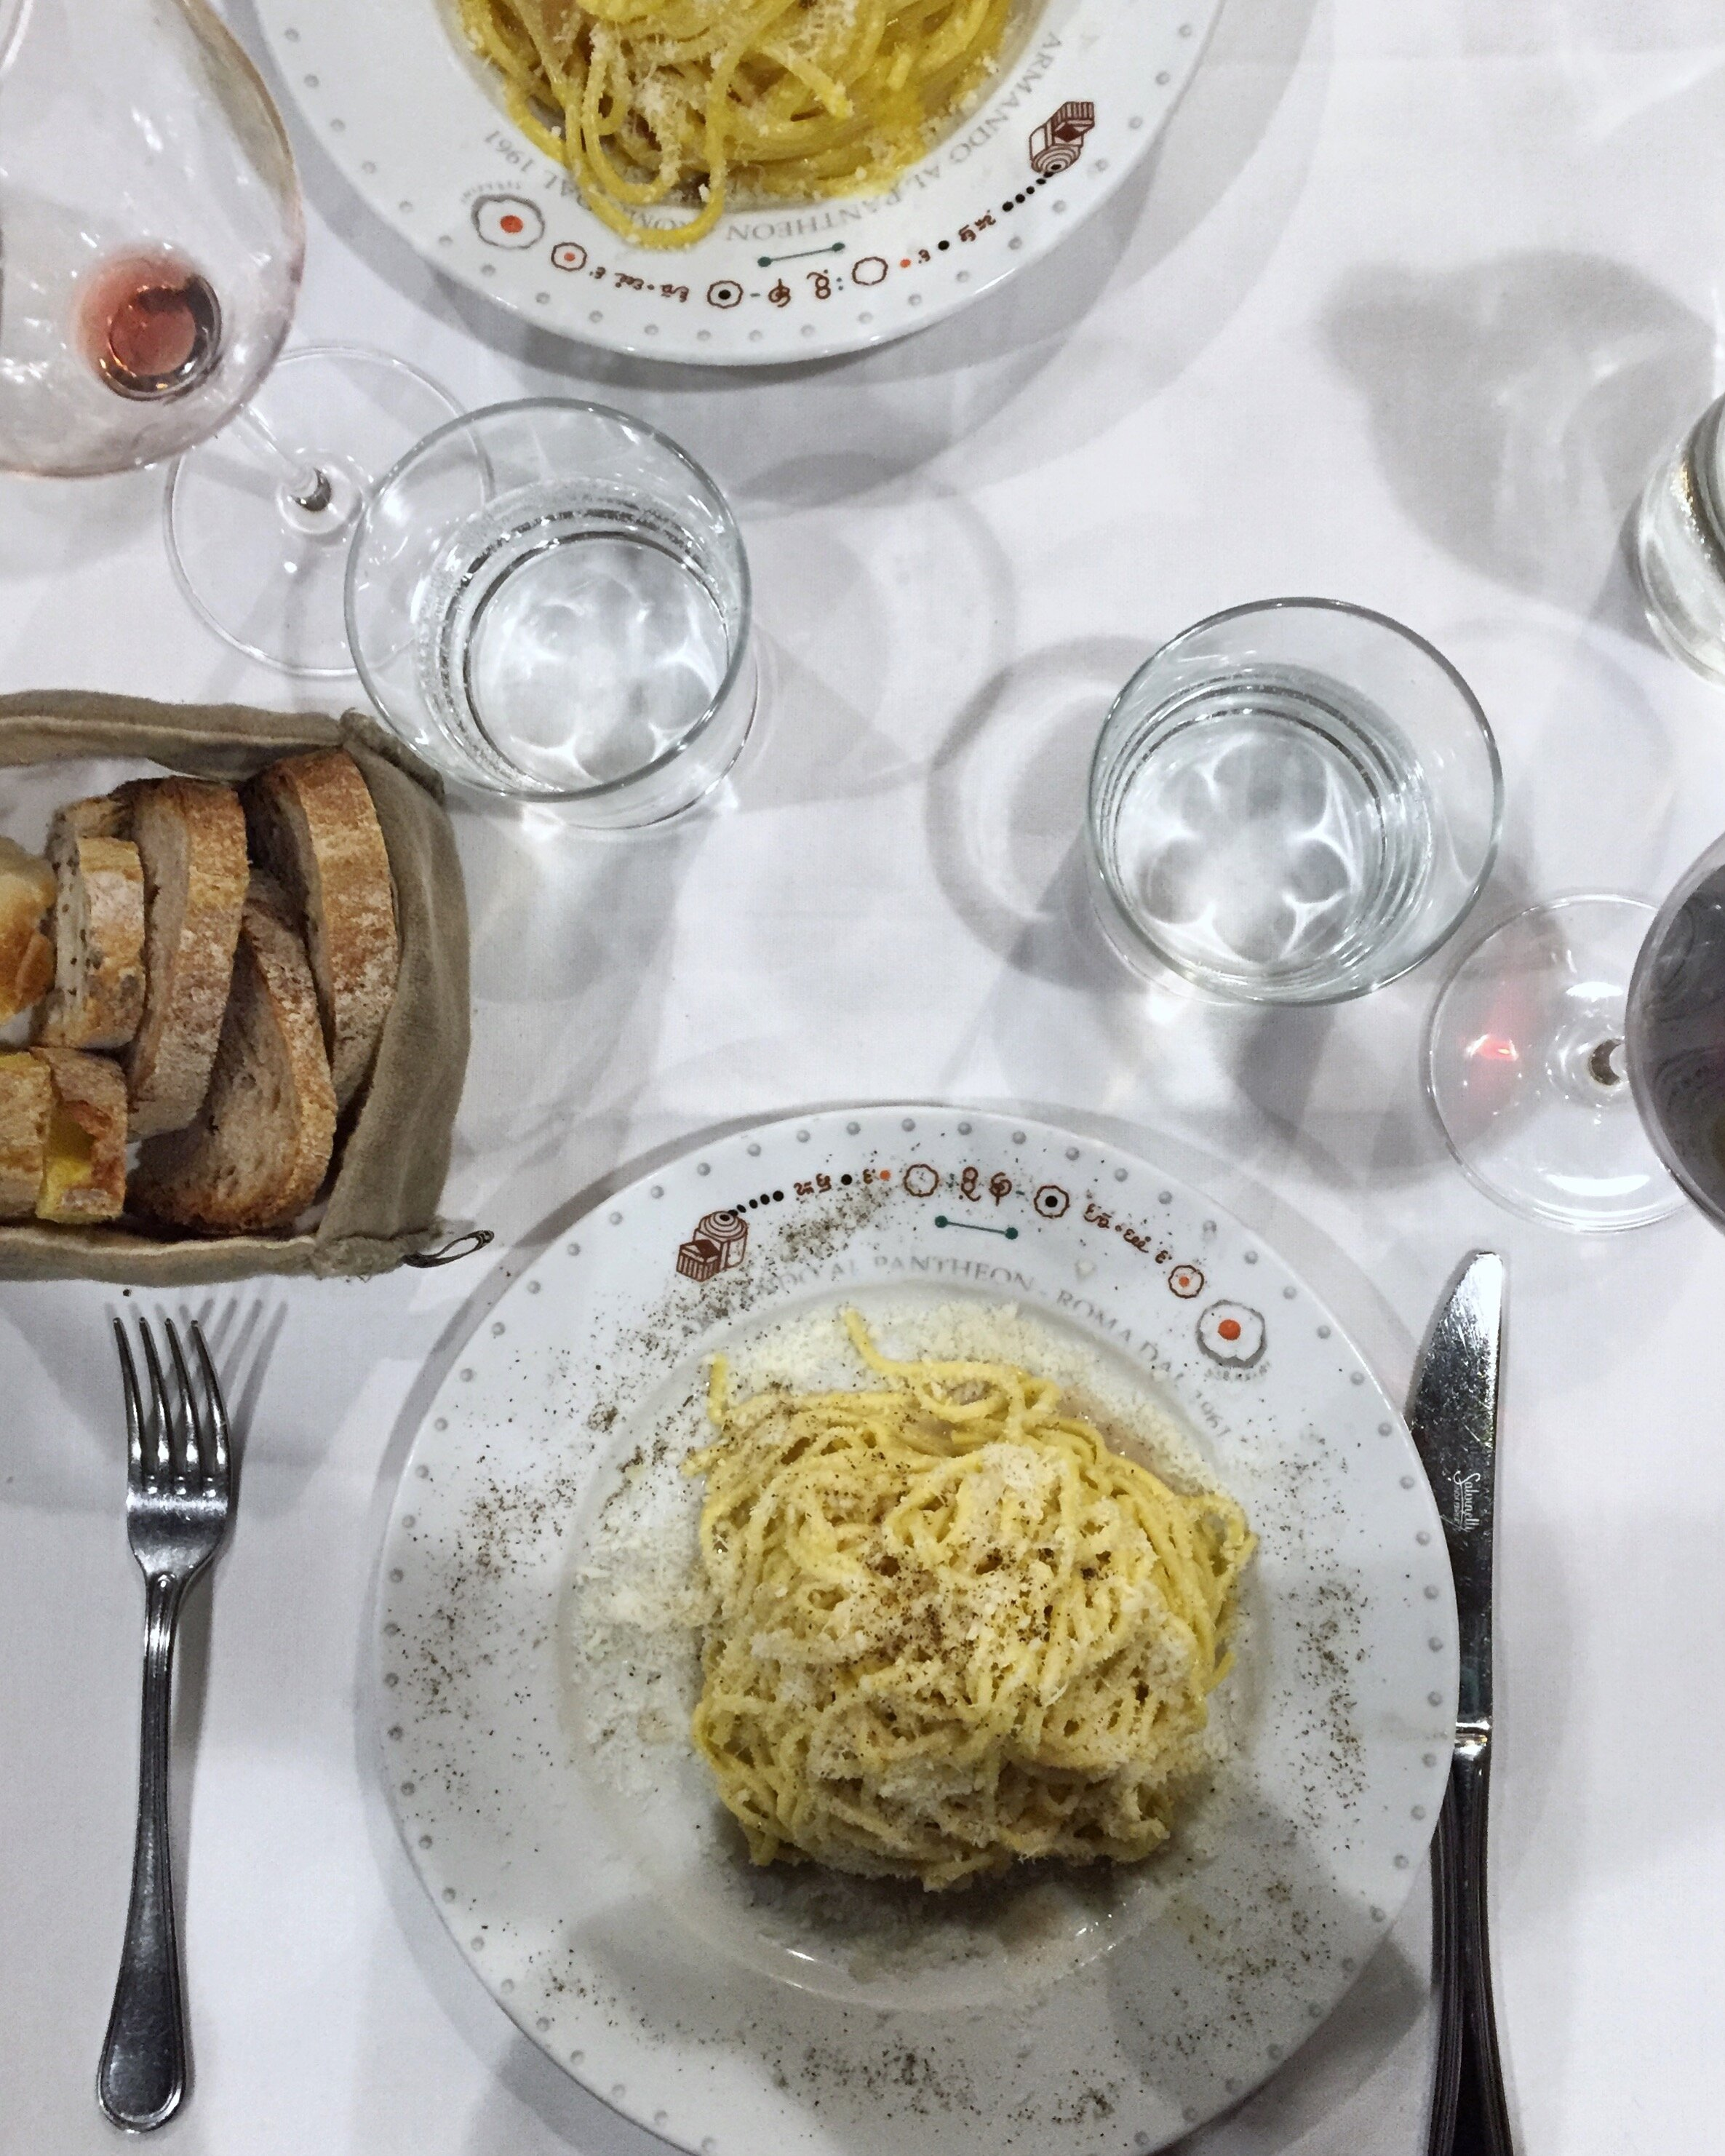 20 Things You Absolutely Must Eat and Drink in Rome (Fodor's)   The perfect gastronomical checklist for Italy's capital